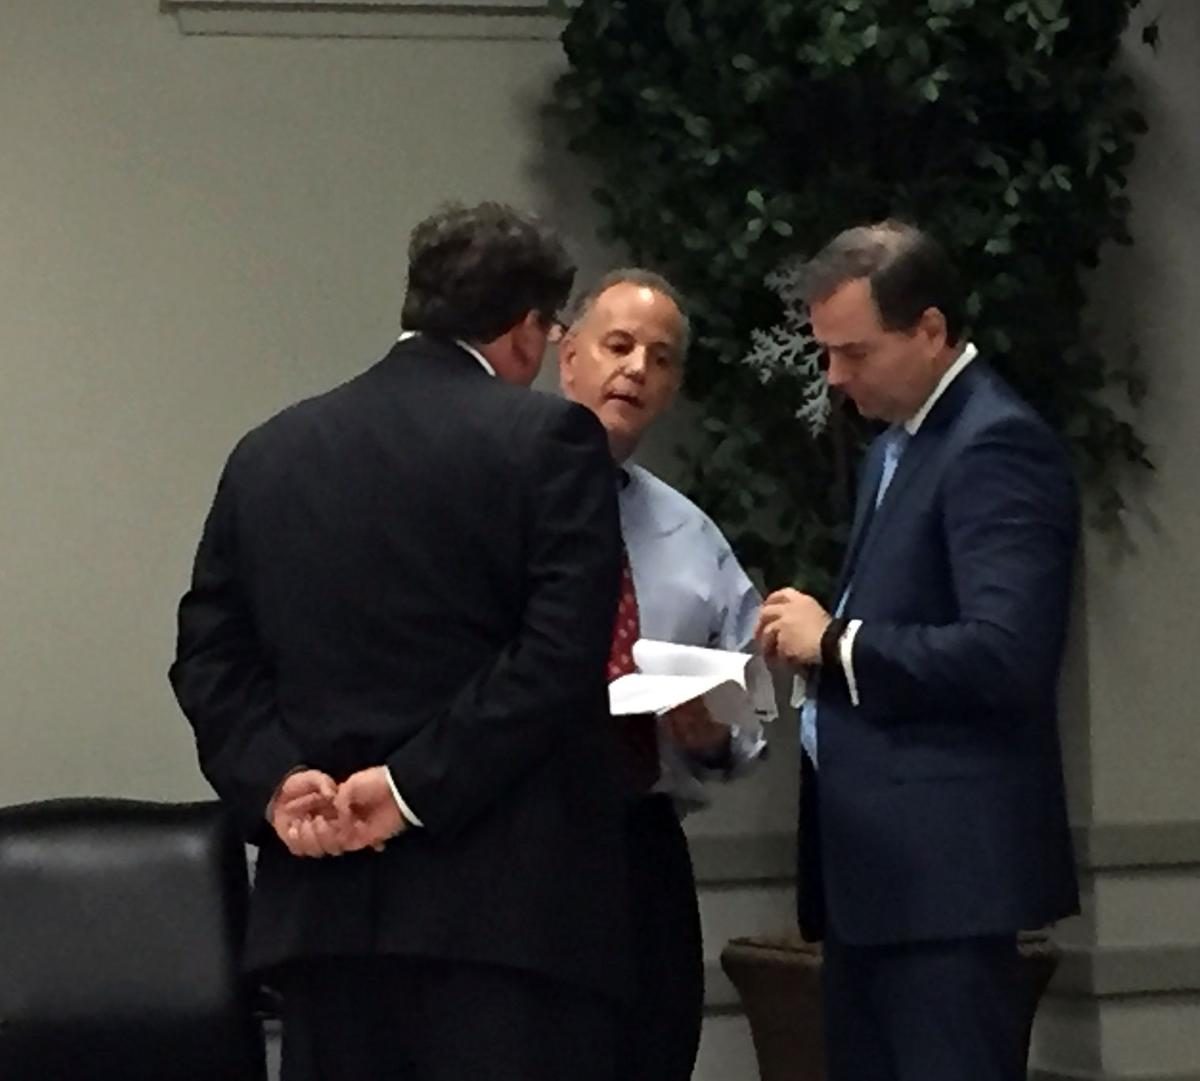 Angelle and May discuss settlement